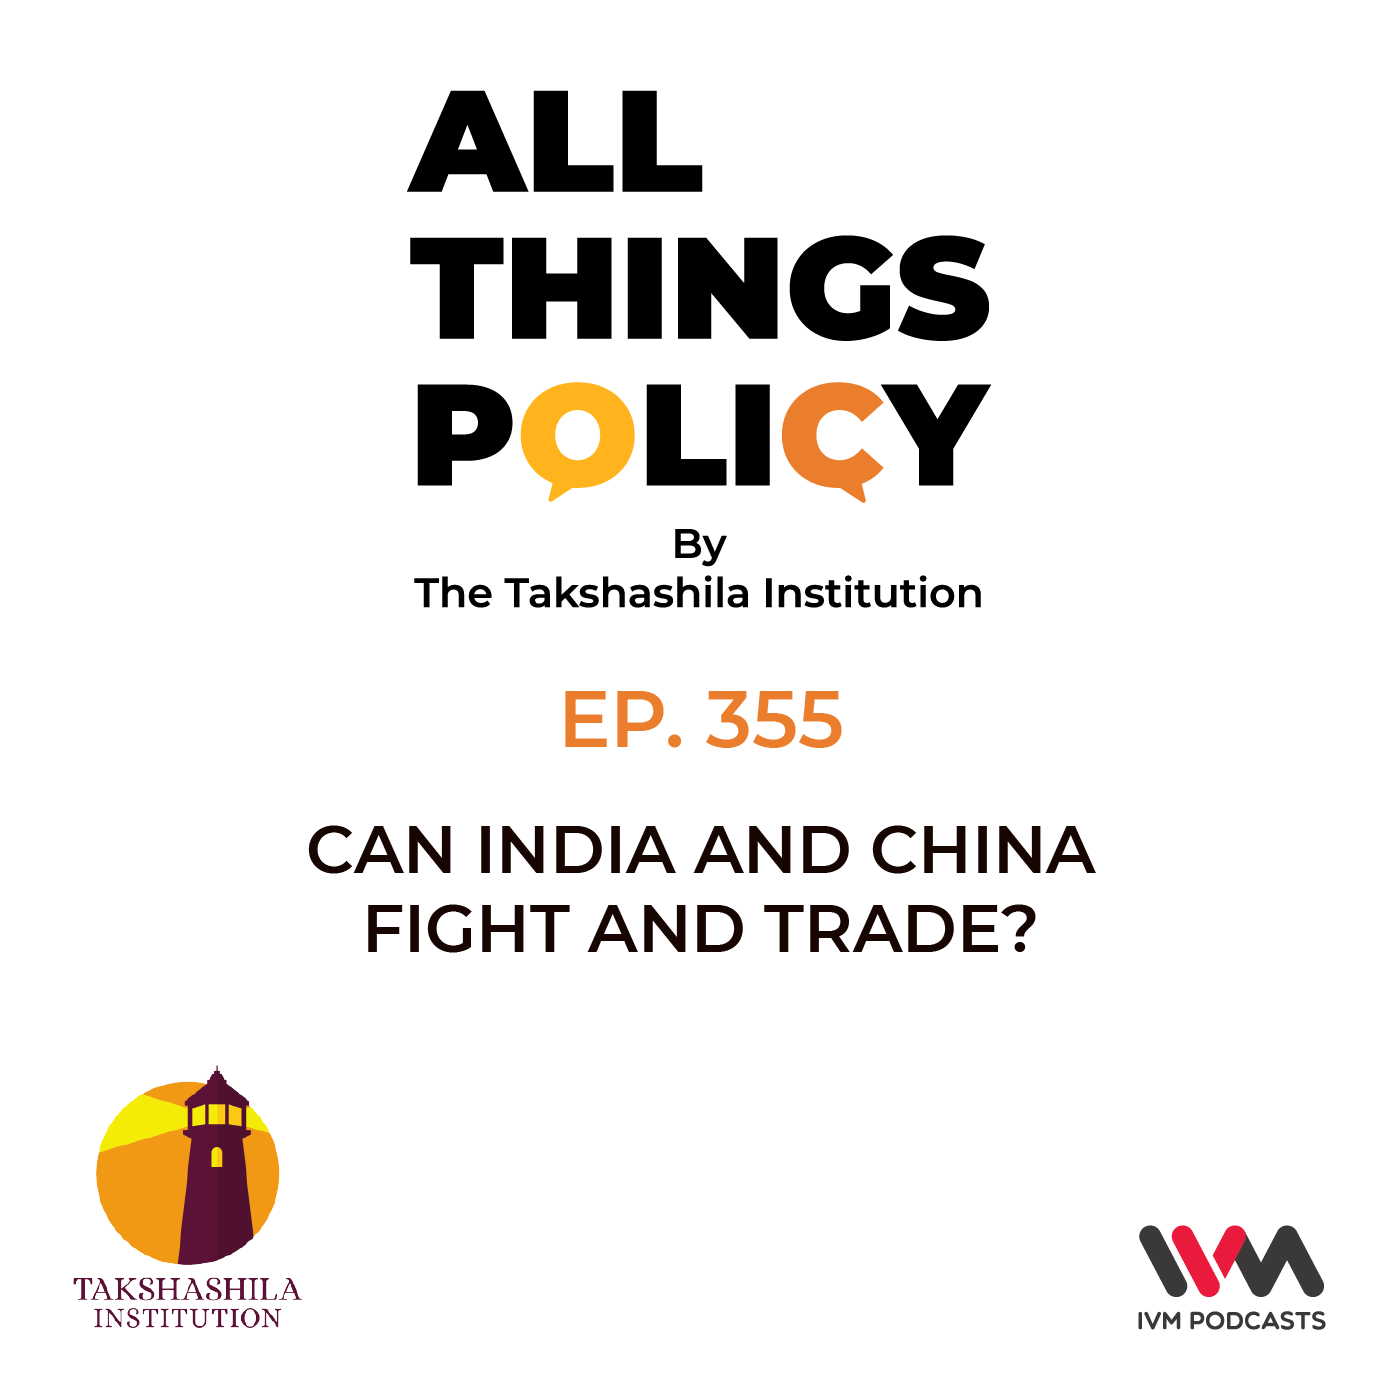 Ep. 355: Can India and China Fight and Trade?